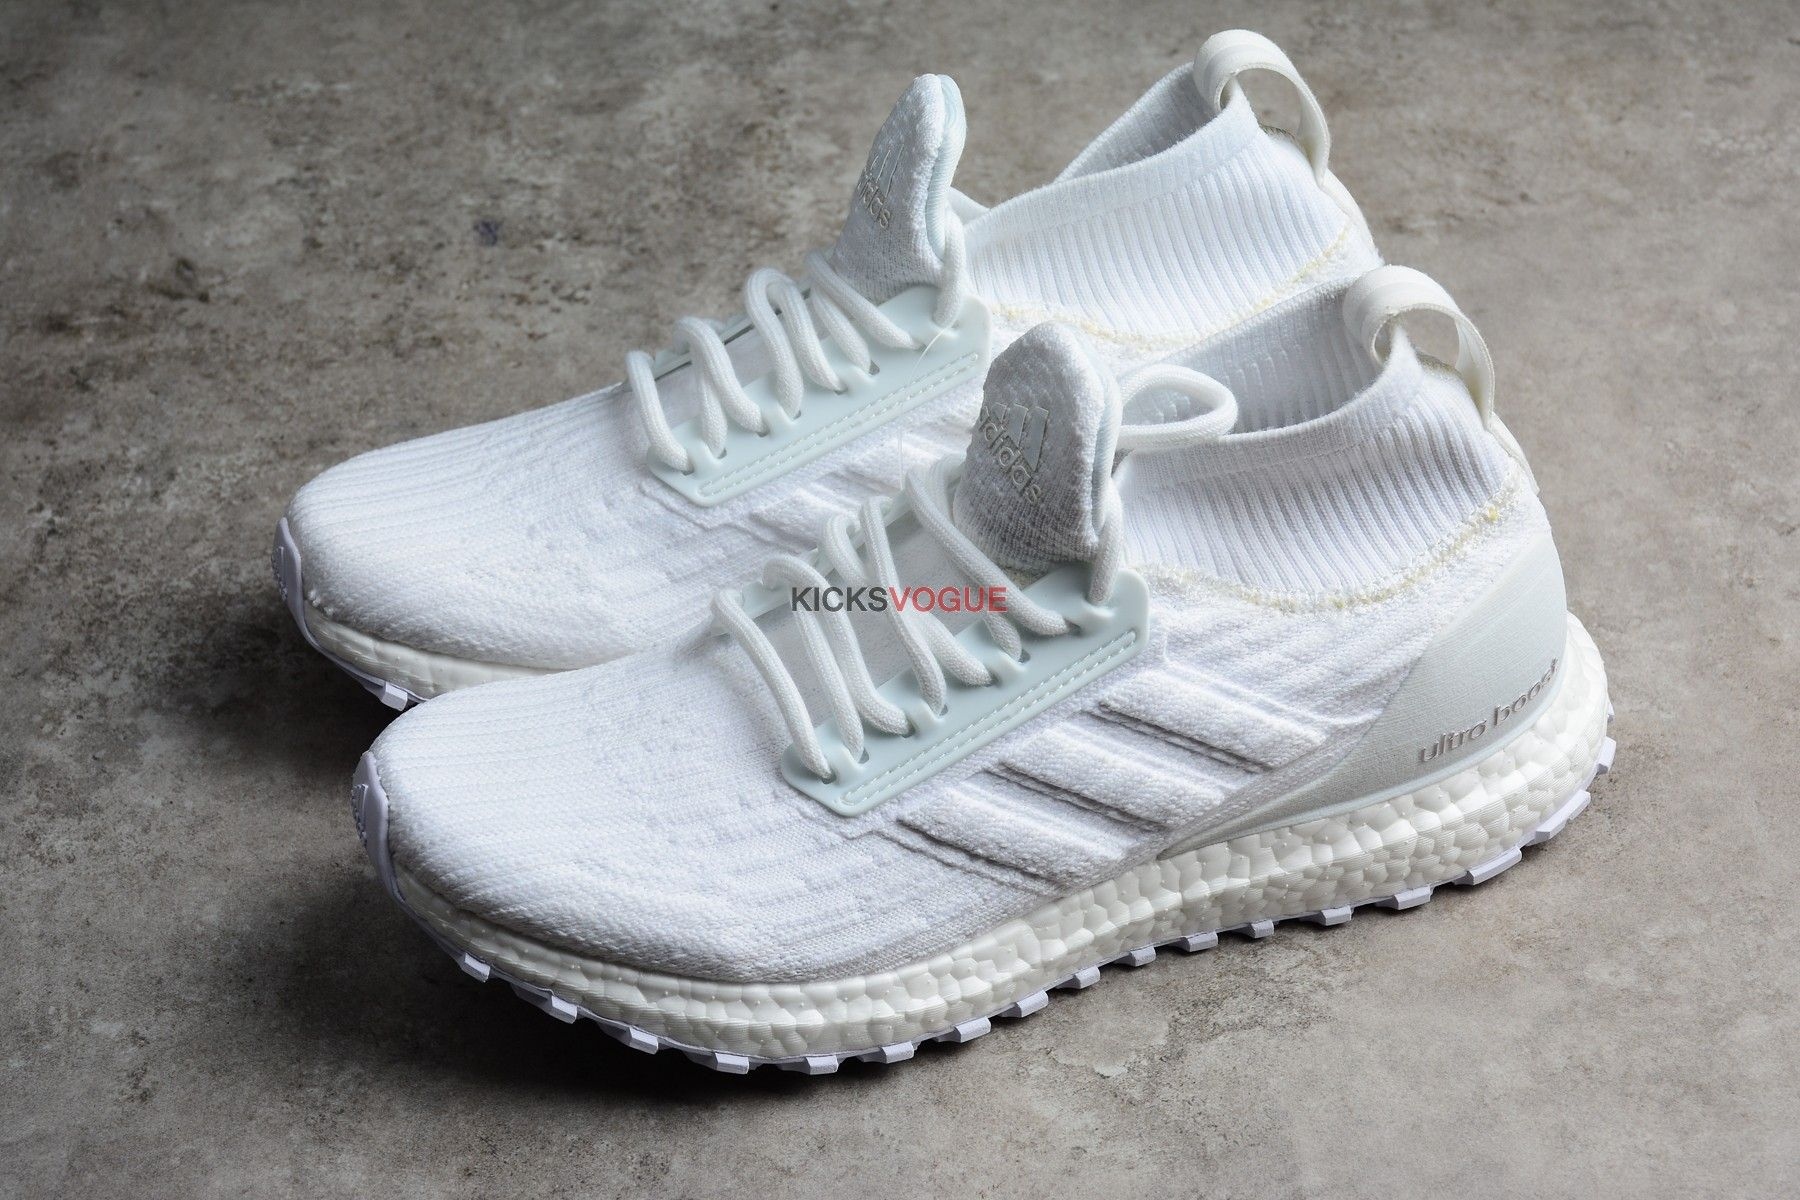 637fe290c ADIDAS ULTRA BOOST ATR MID PRIMEKNIT TRIPLE WHITE BY8926